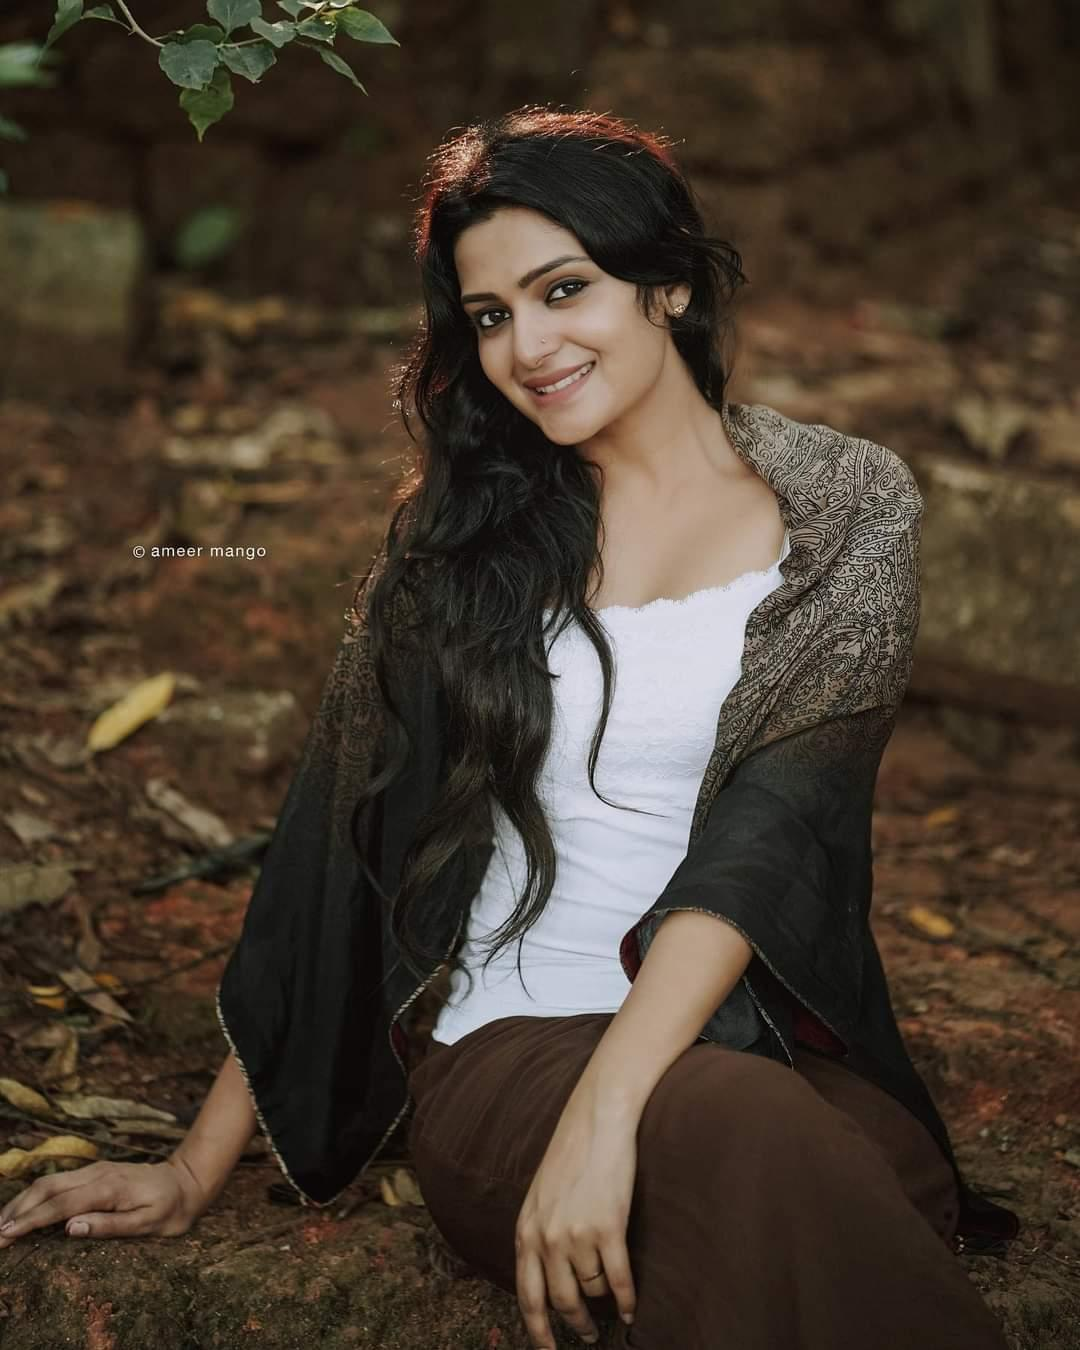 Malayalam actress hot gallery   Divya Pillai latest hot and sexy photoshoot  Photos: HD Images, Pictures, Stills, First Look Posters of Malayalam  actress hot gallery   Divya Pillai latest hot and sexy